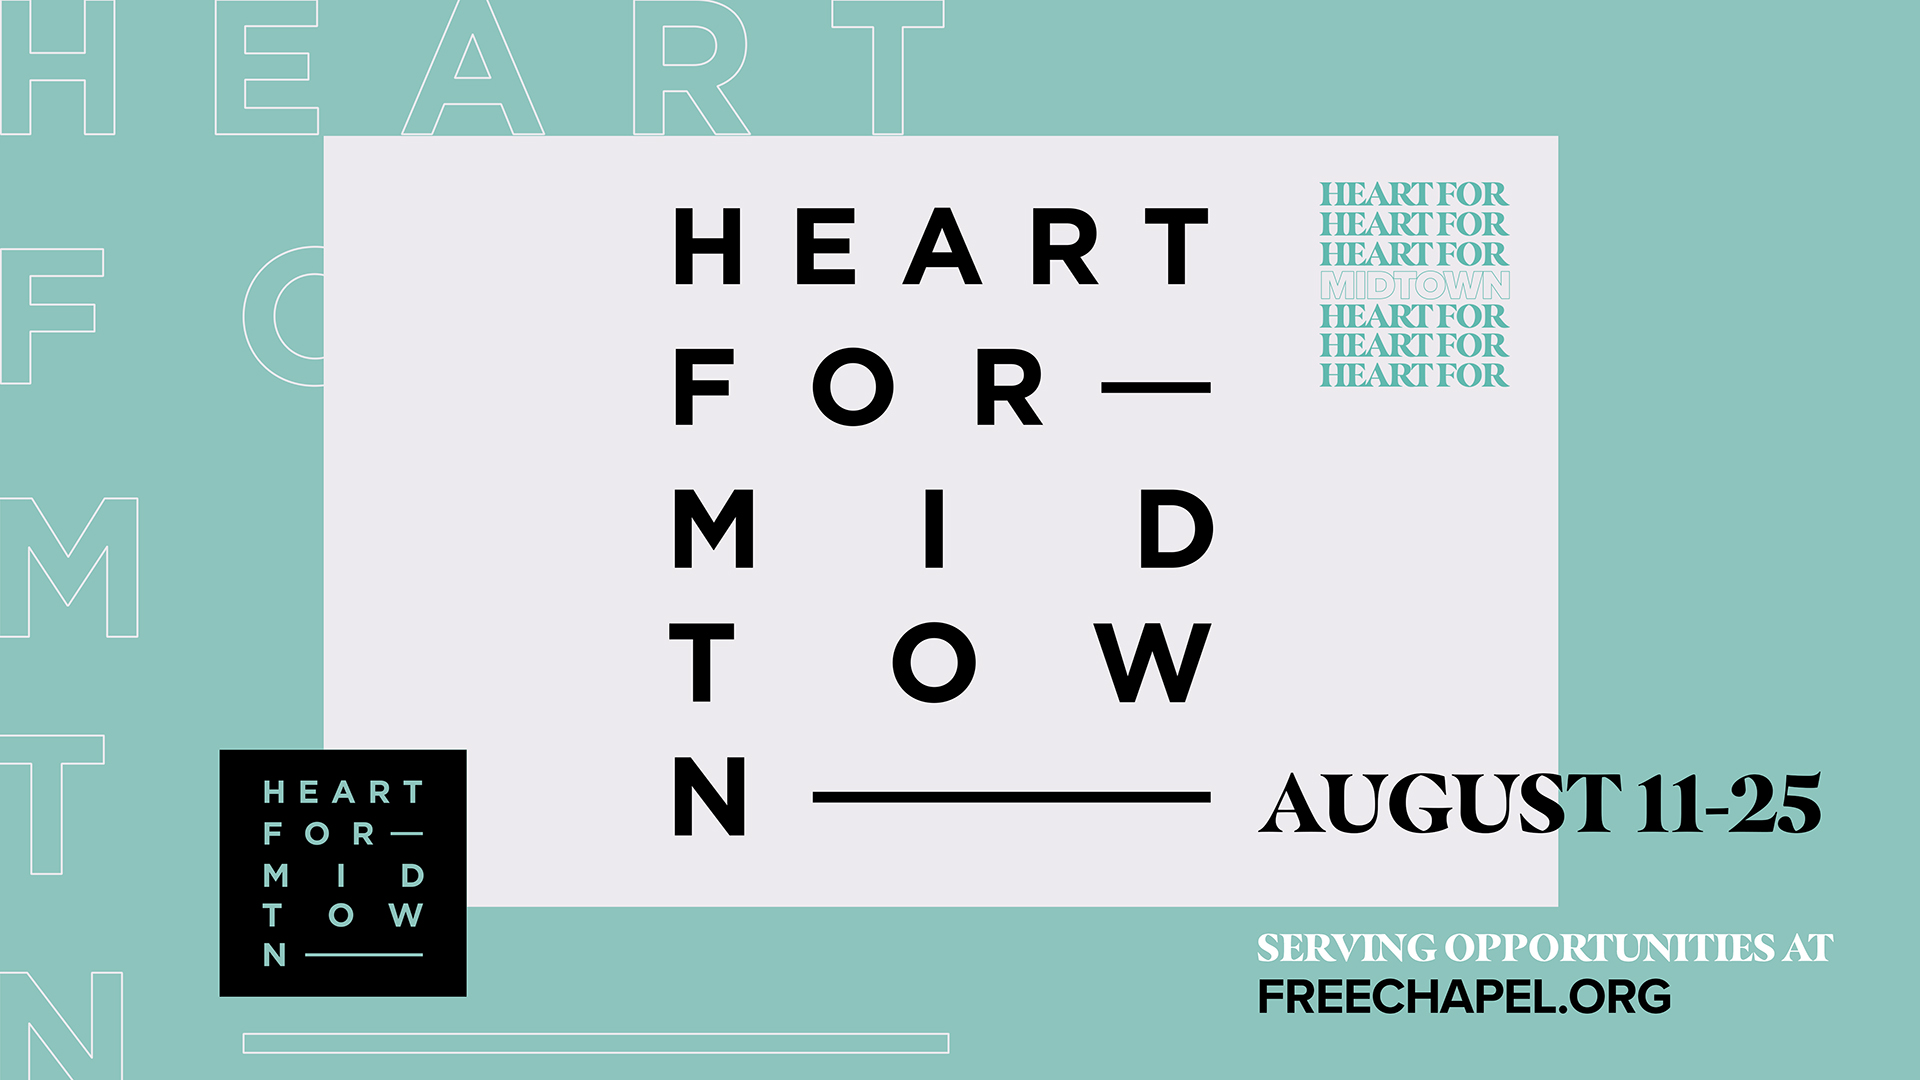 Heart For Midtown at the Midtown campus